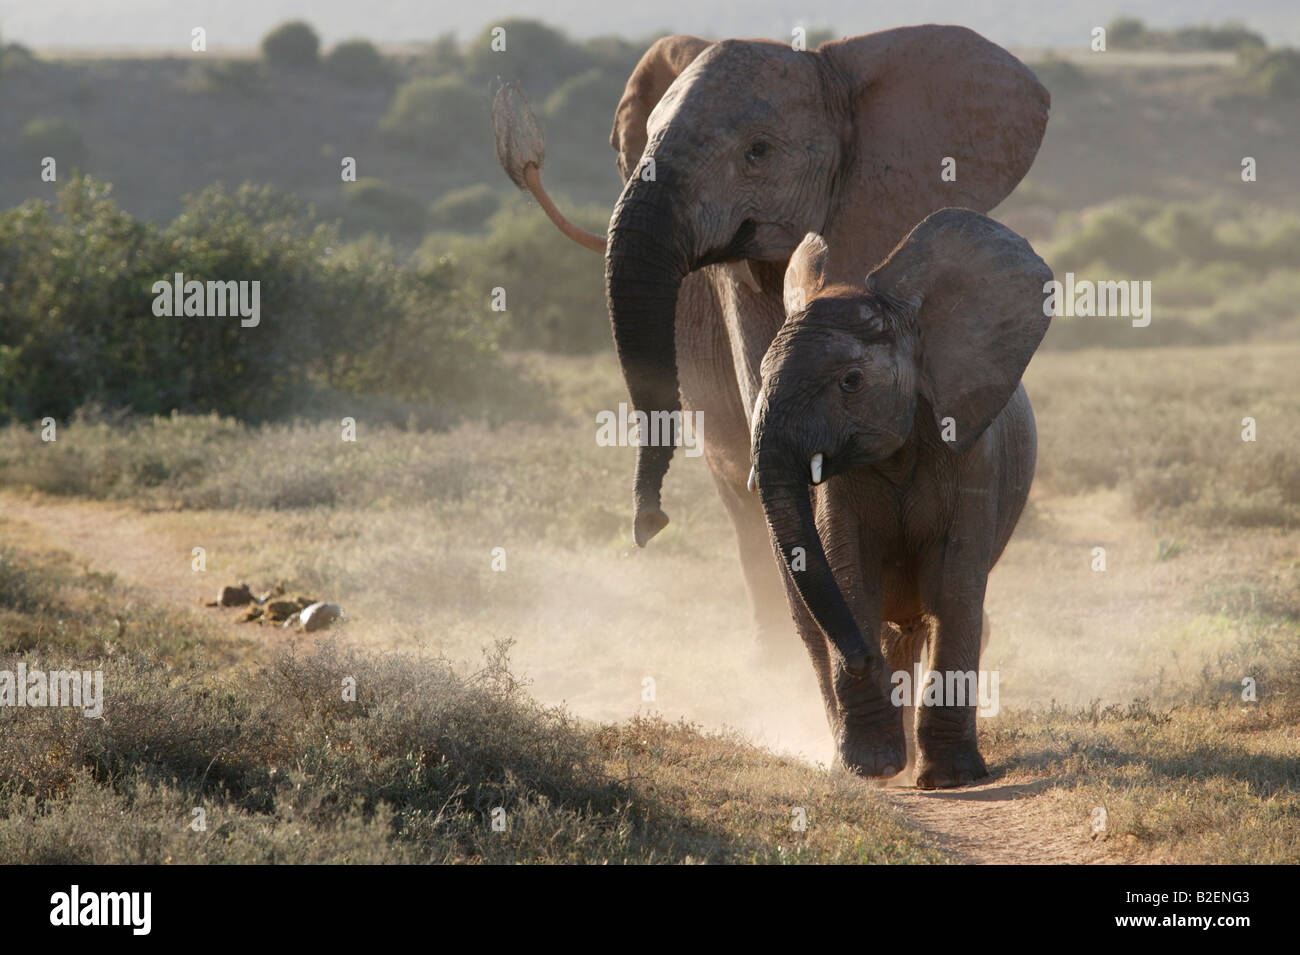 A frontal view of two elephants in an aggressive pose Stock Photo